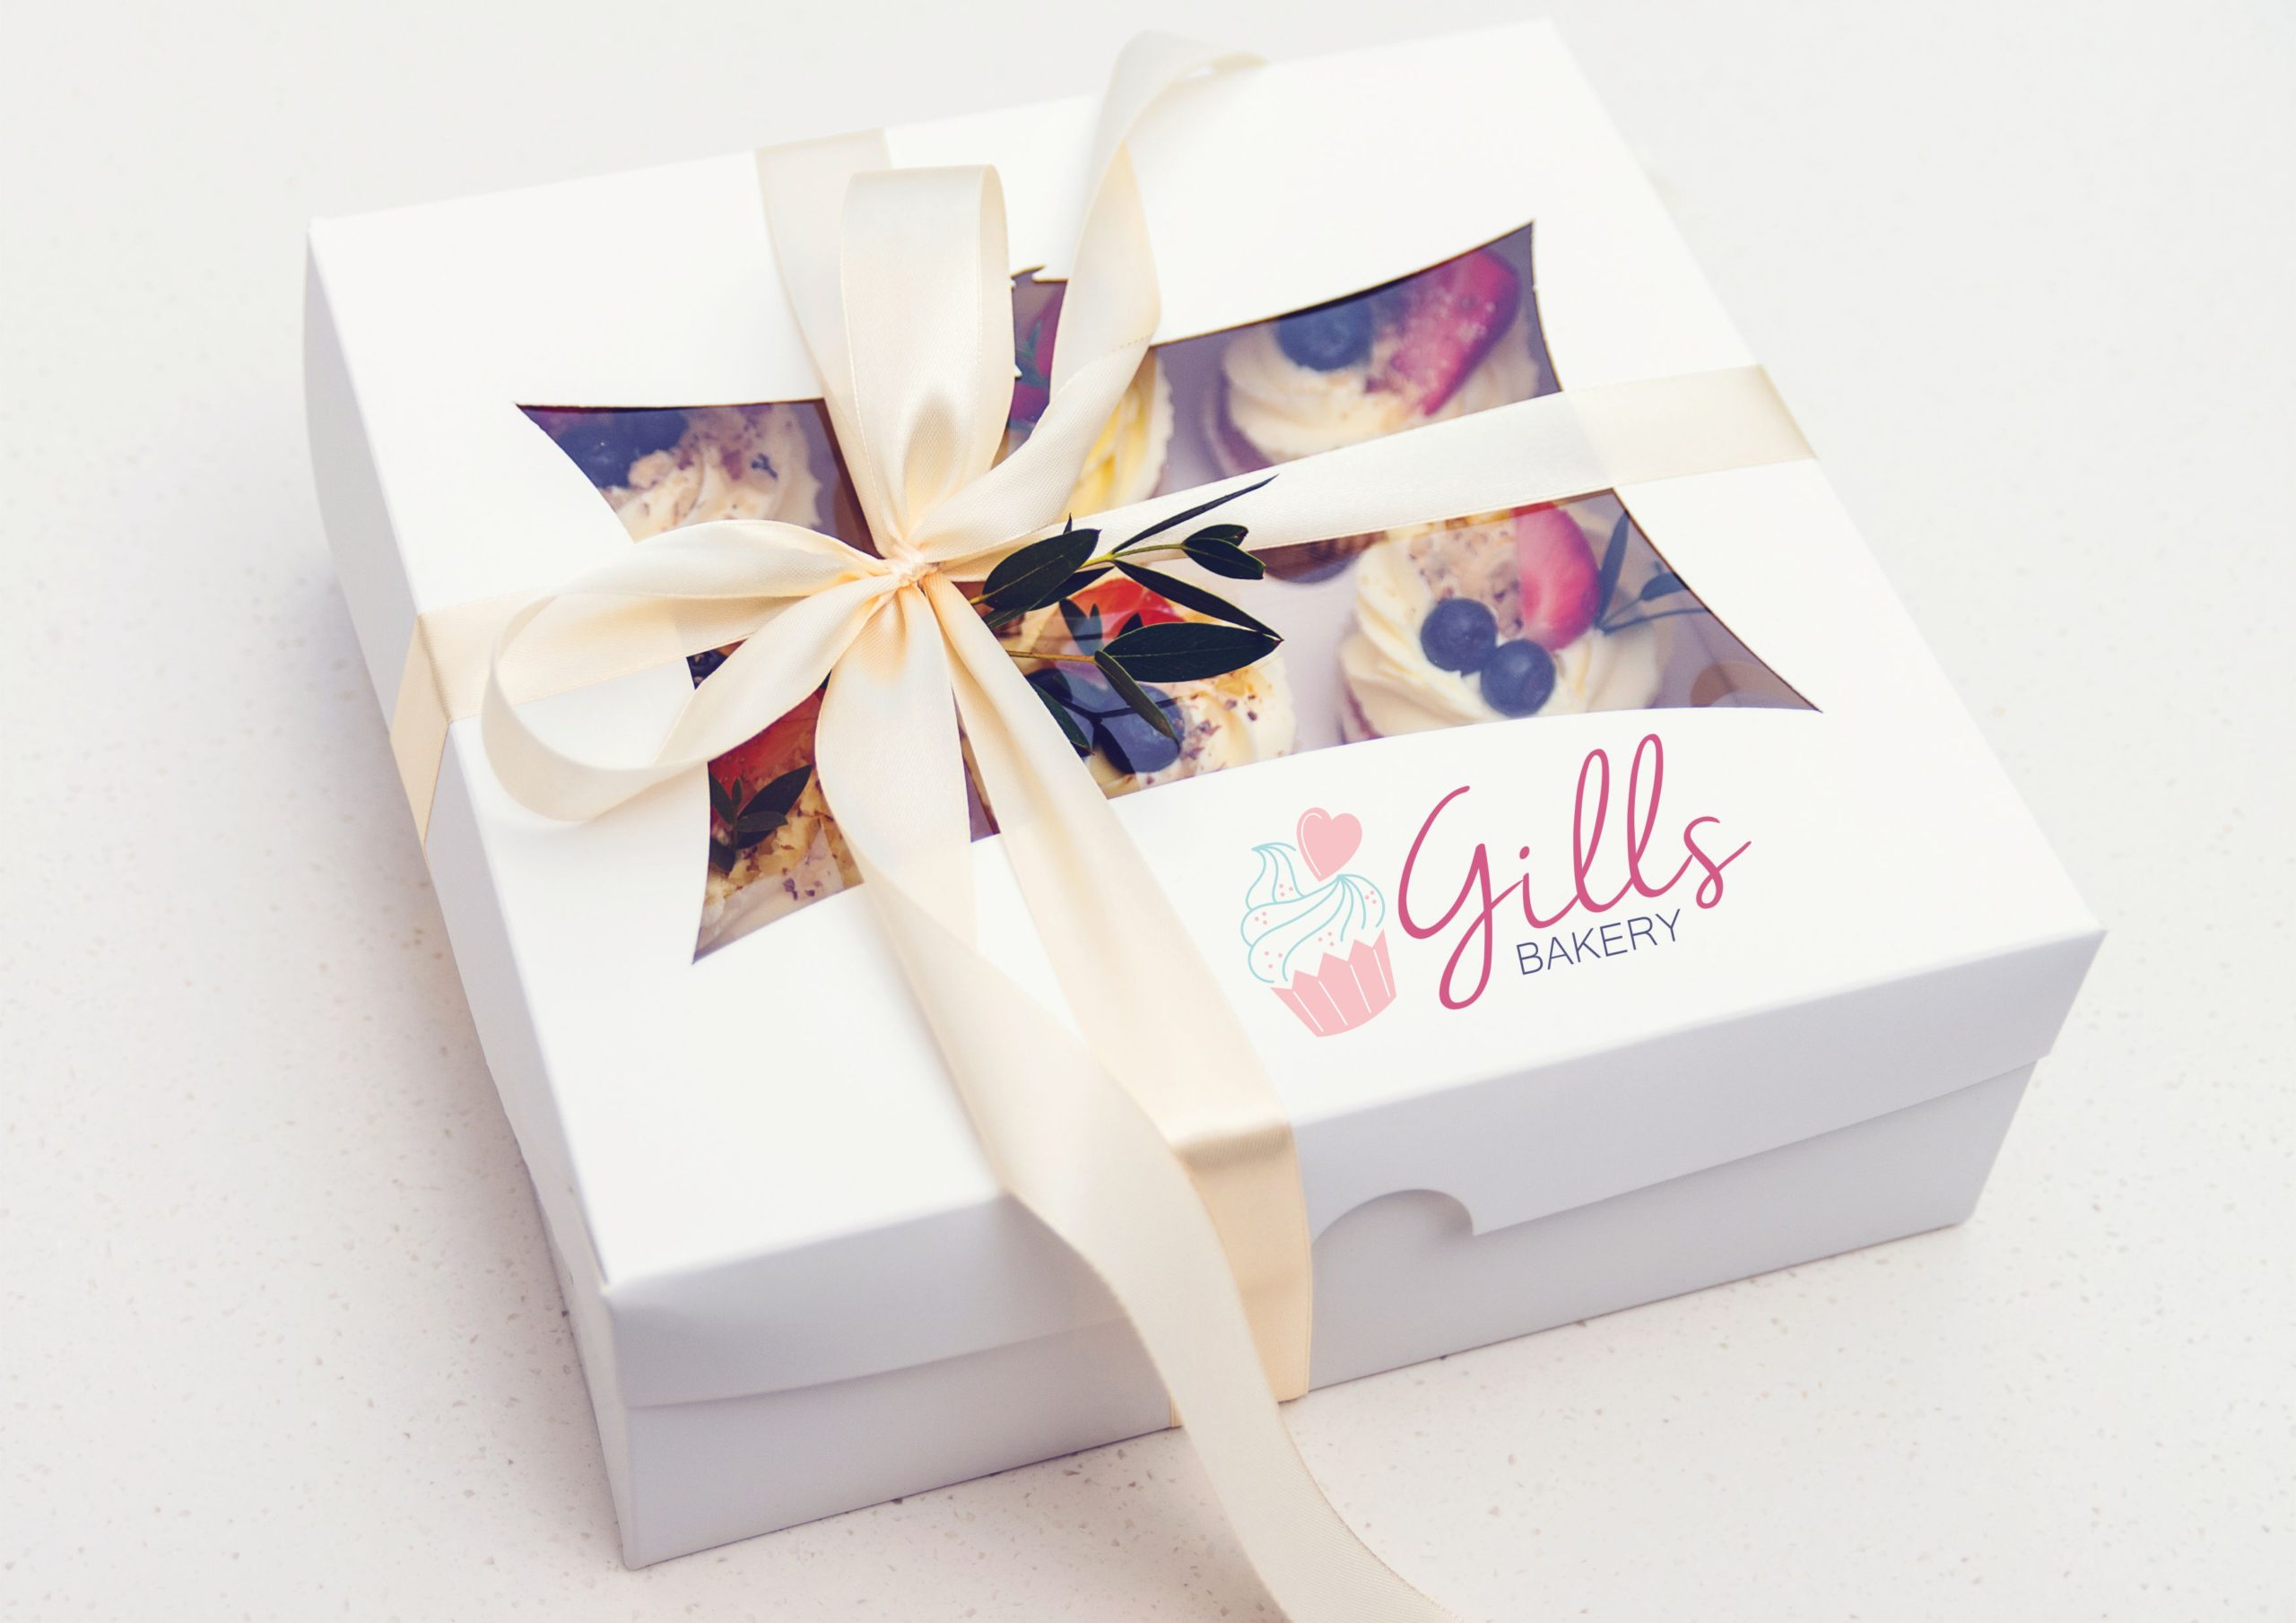 Gills bakery packaging